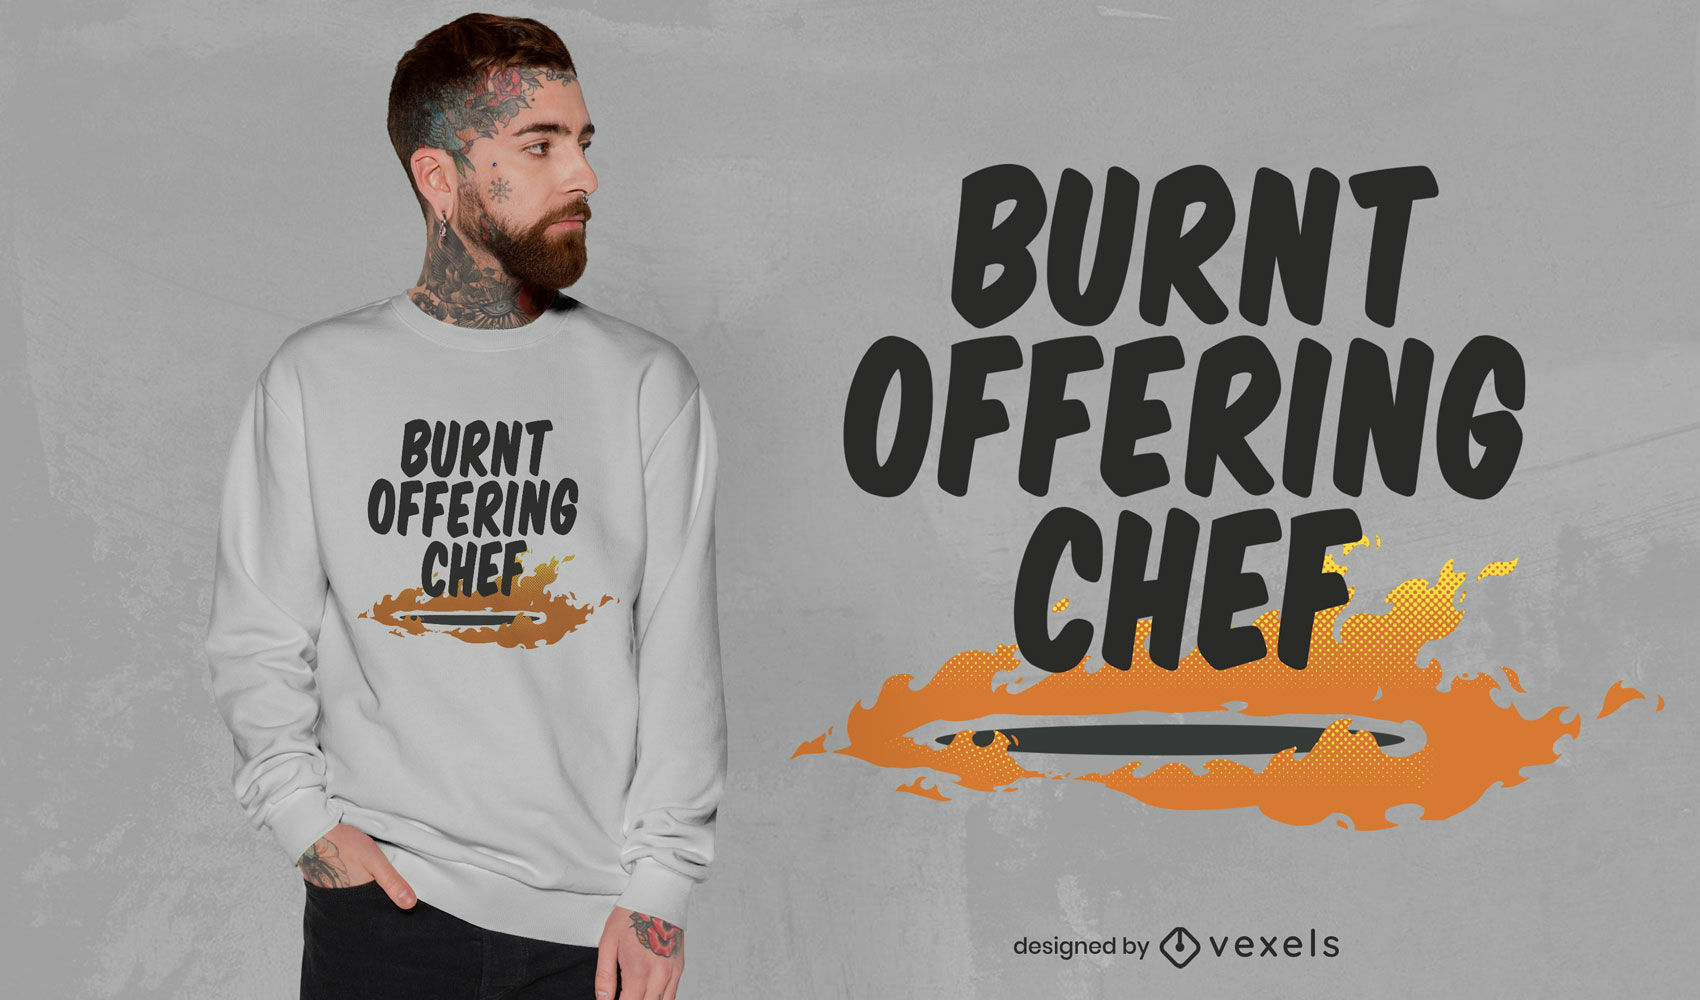 Burnt offering chef quote t-shirt design